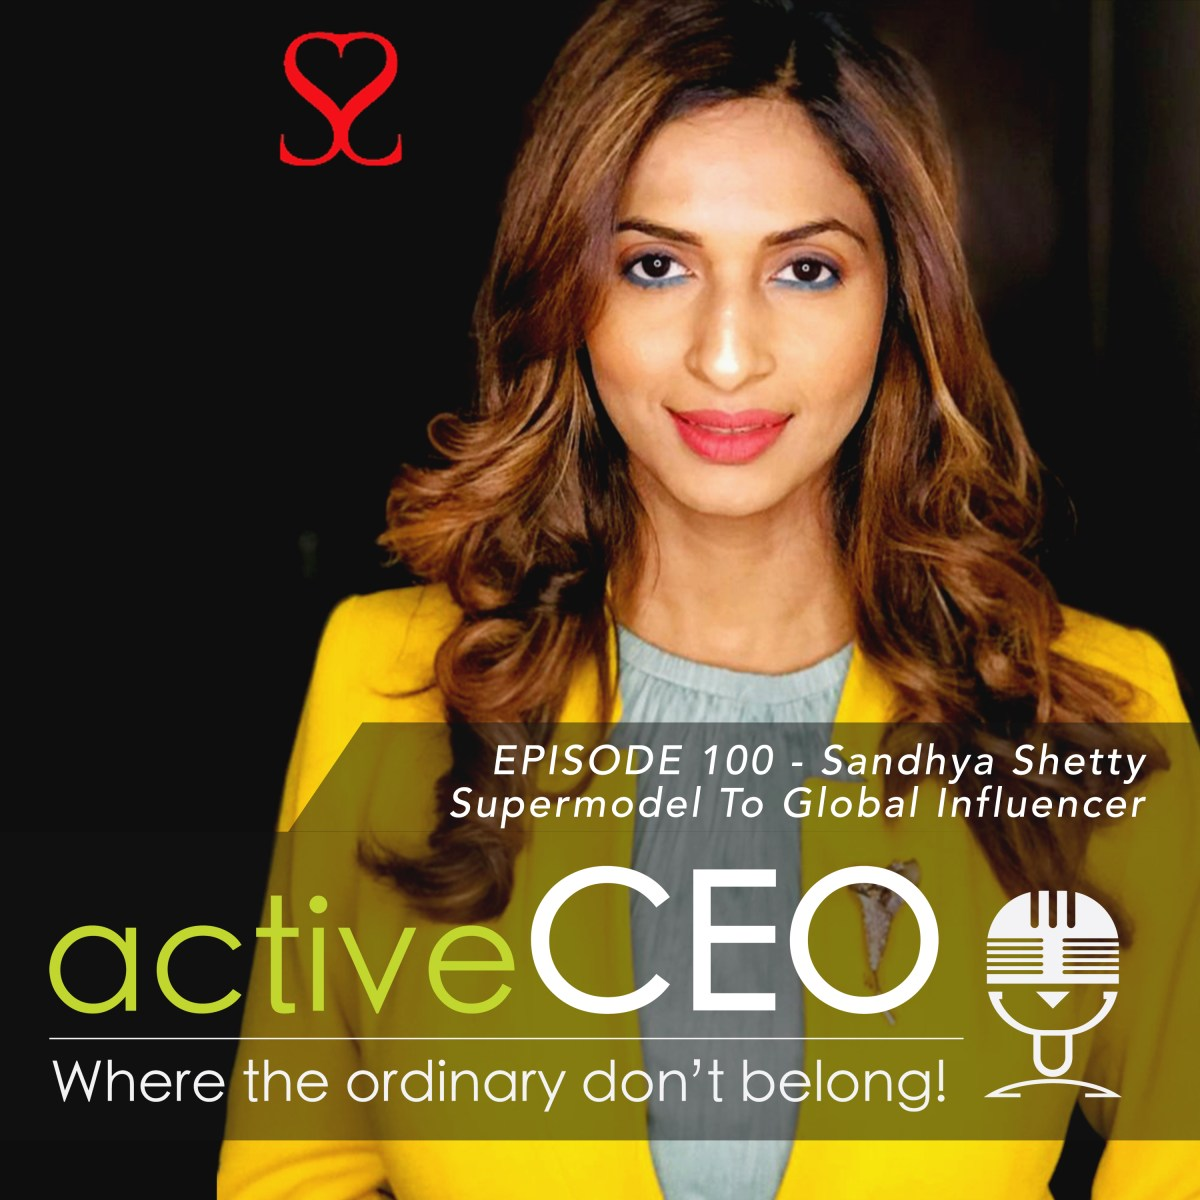 active CEO Podcast #100 Sandhya Shetty Supermodel To Global Influencer Speakers Institute Karate Craig Johns NRG2Perform active CEO